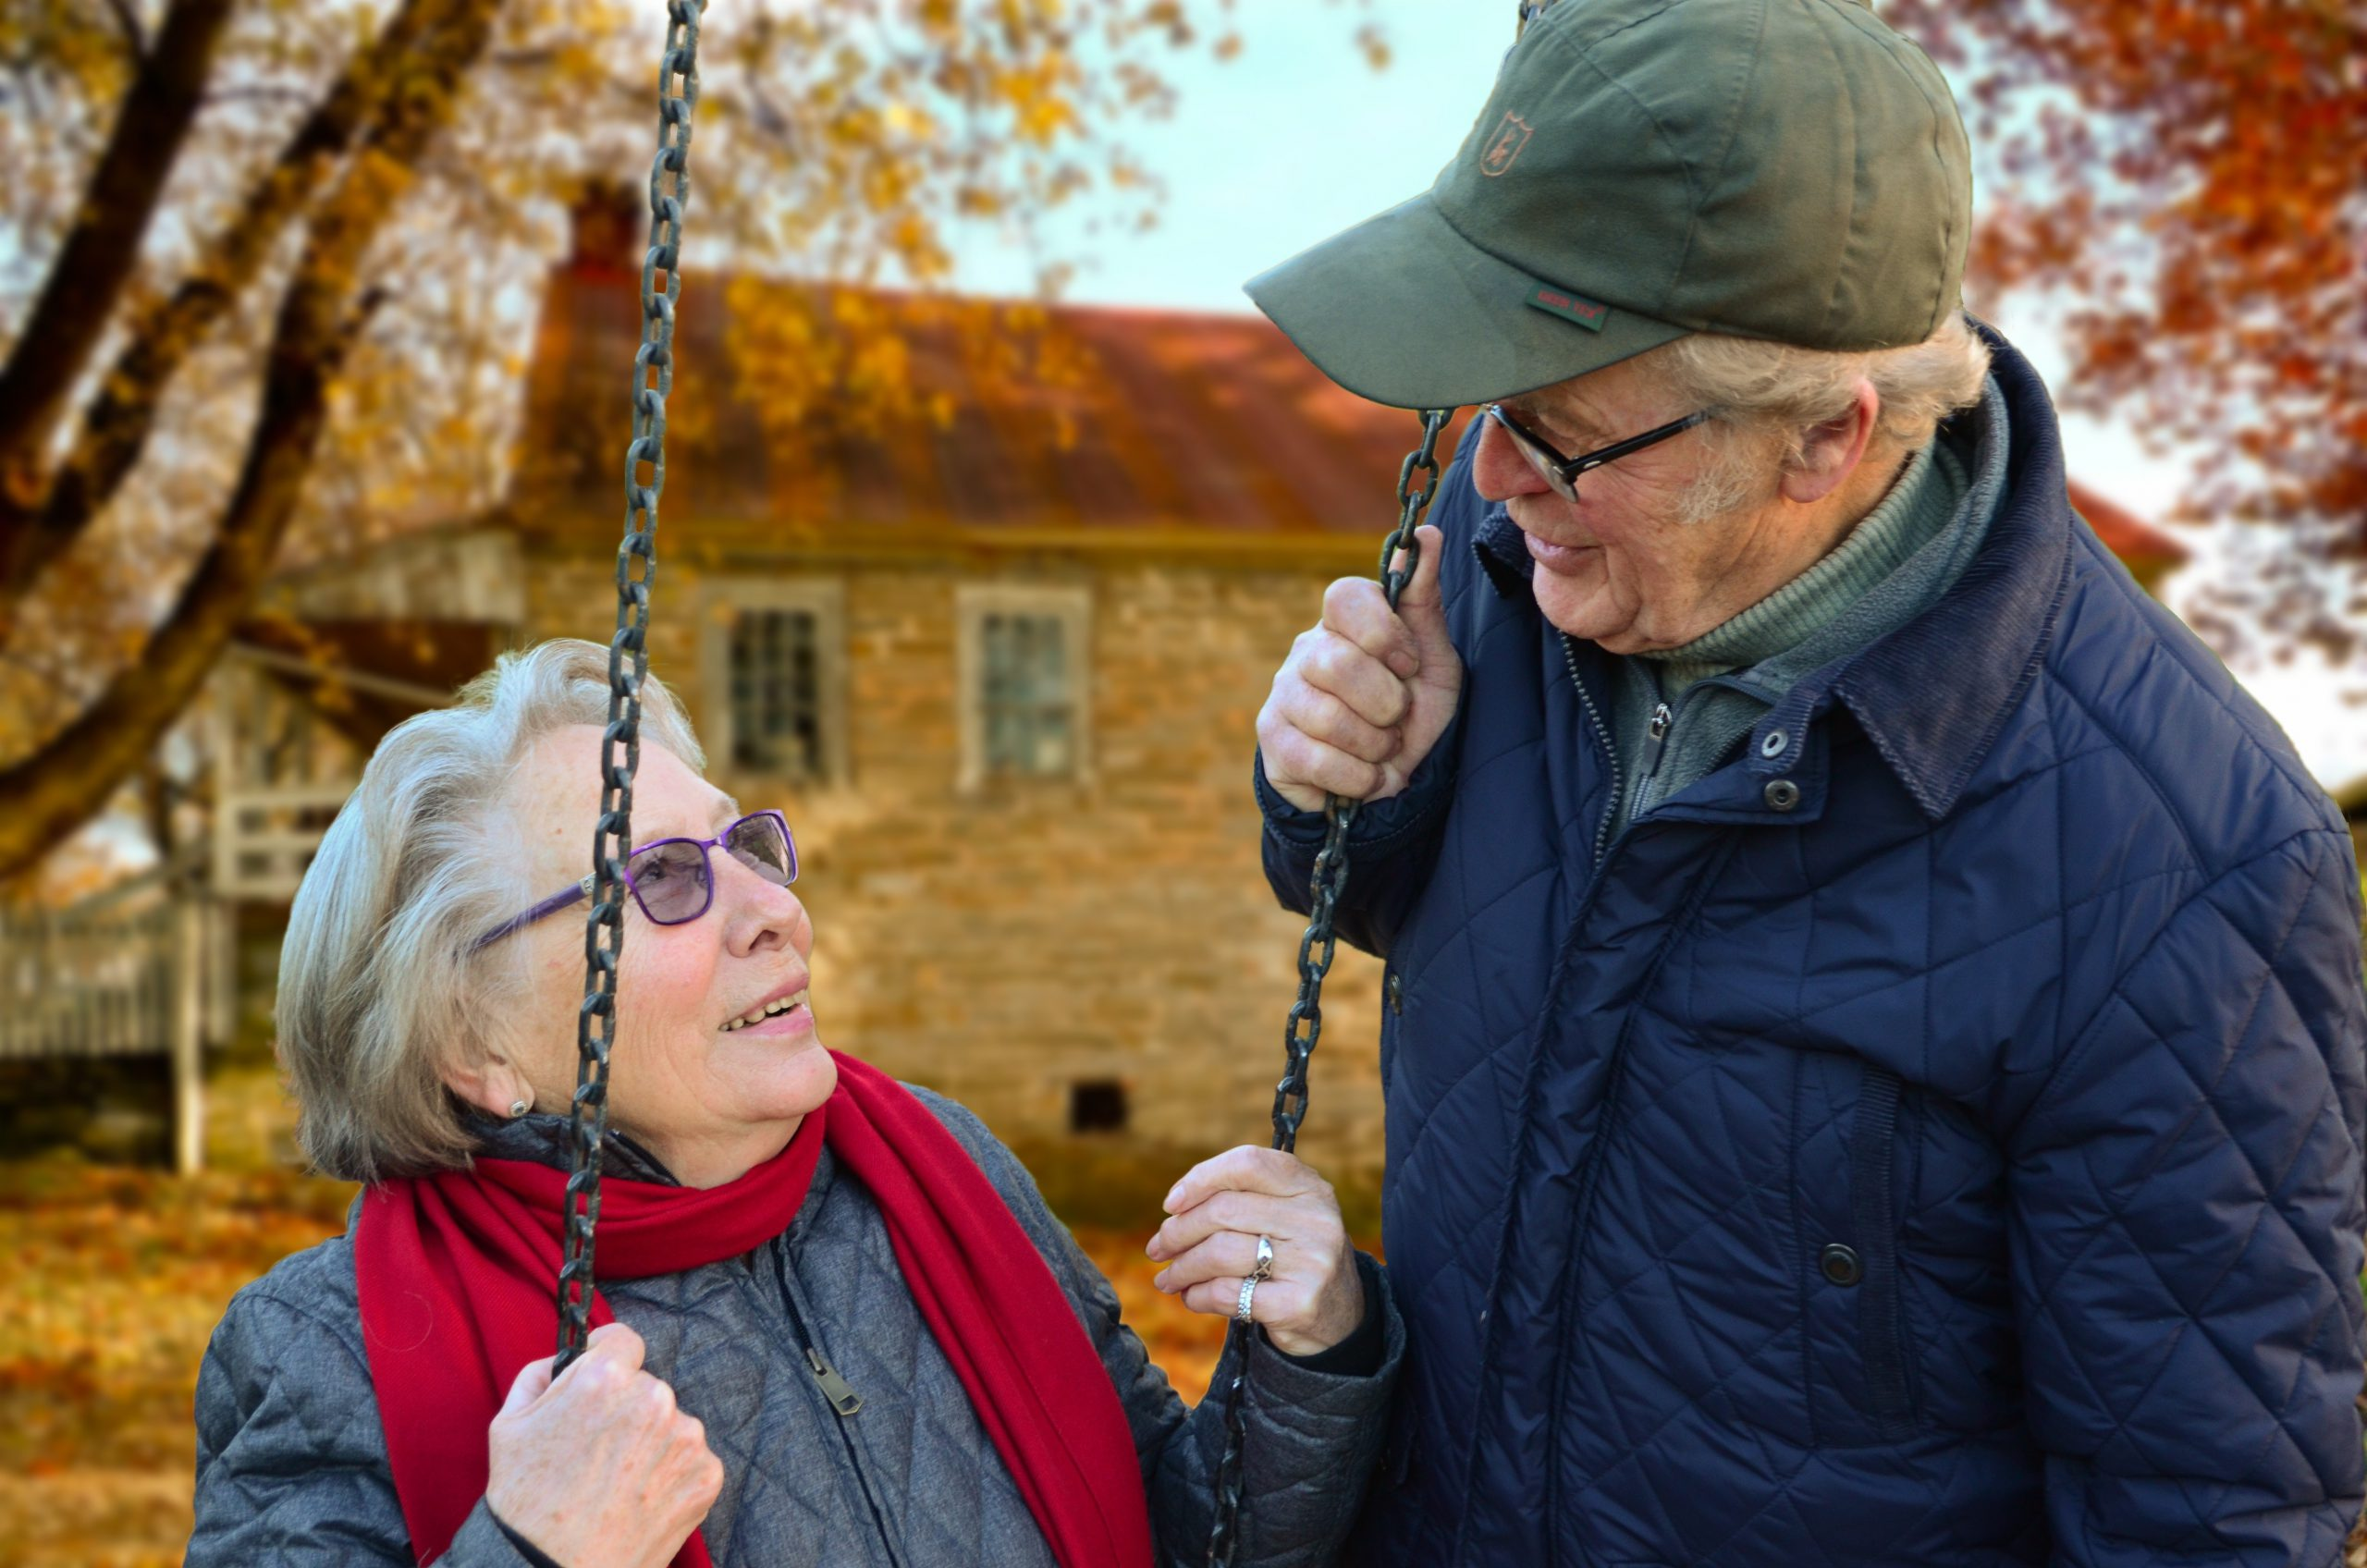 An elderly couple smile at one another outside while the woman sits on a swing